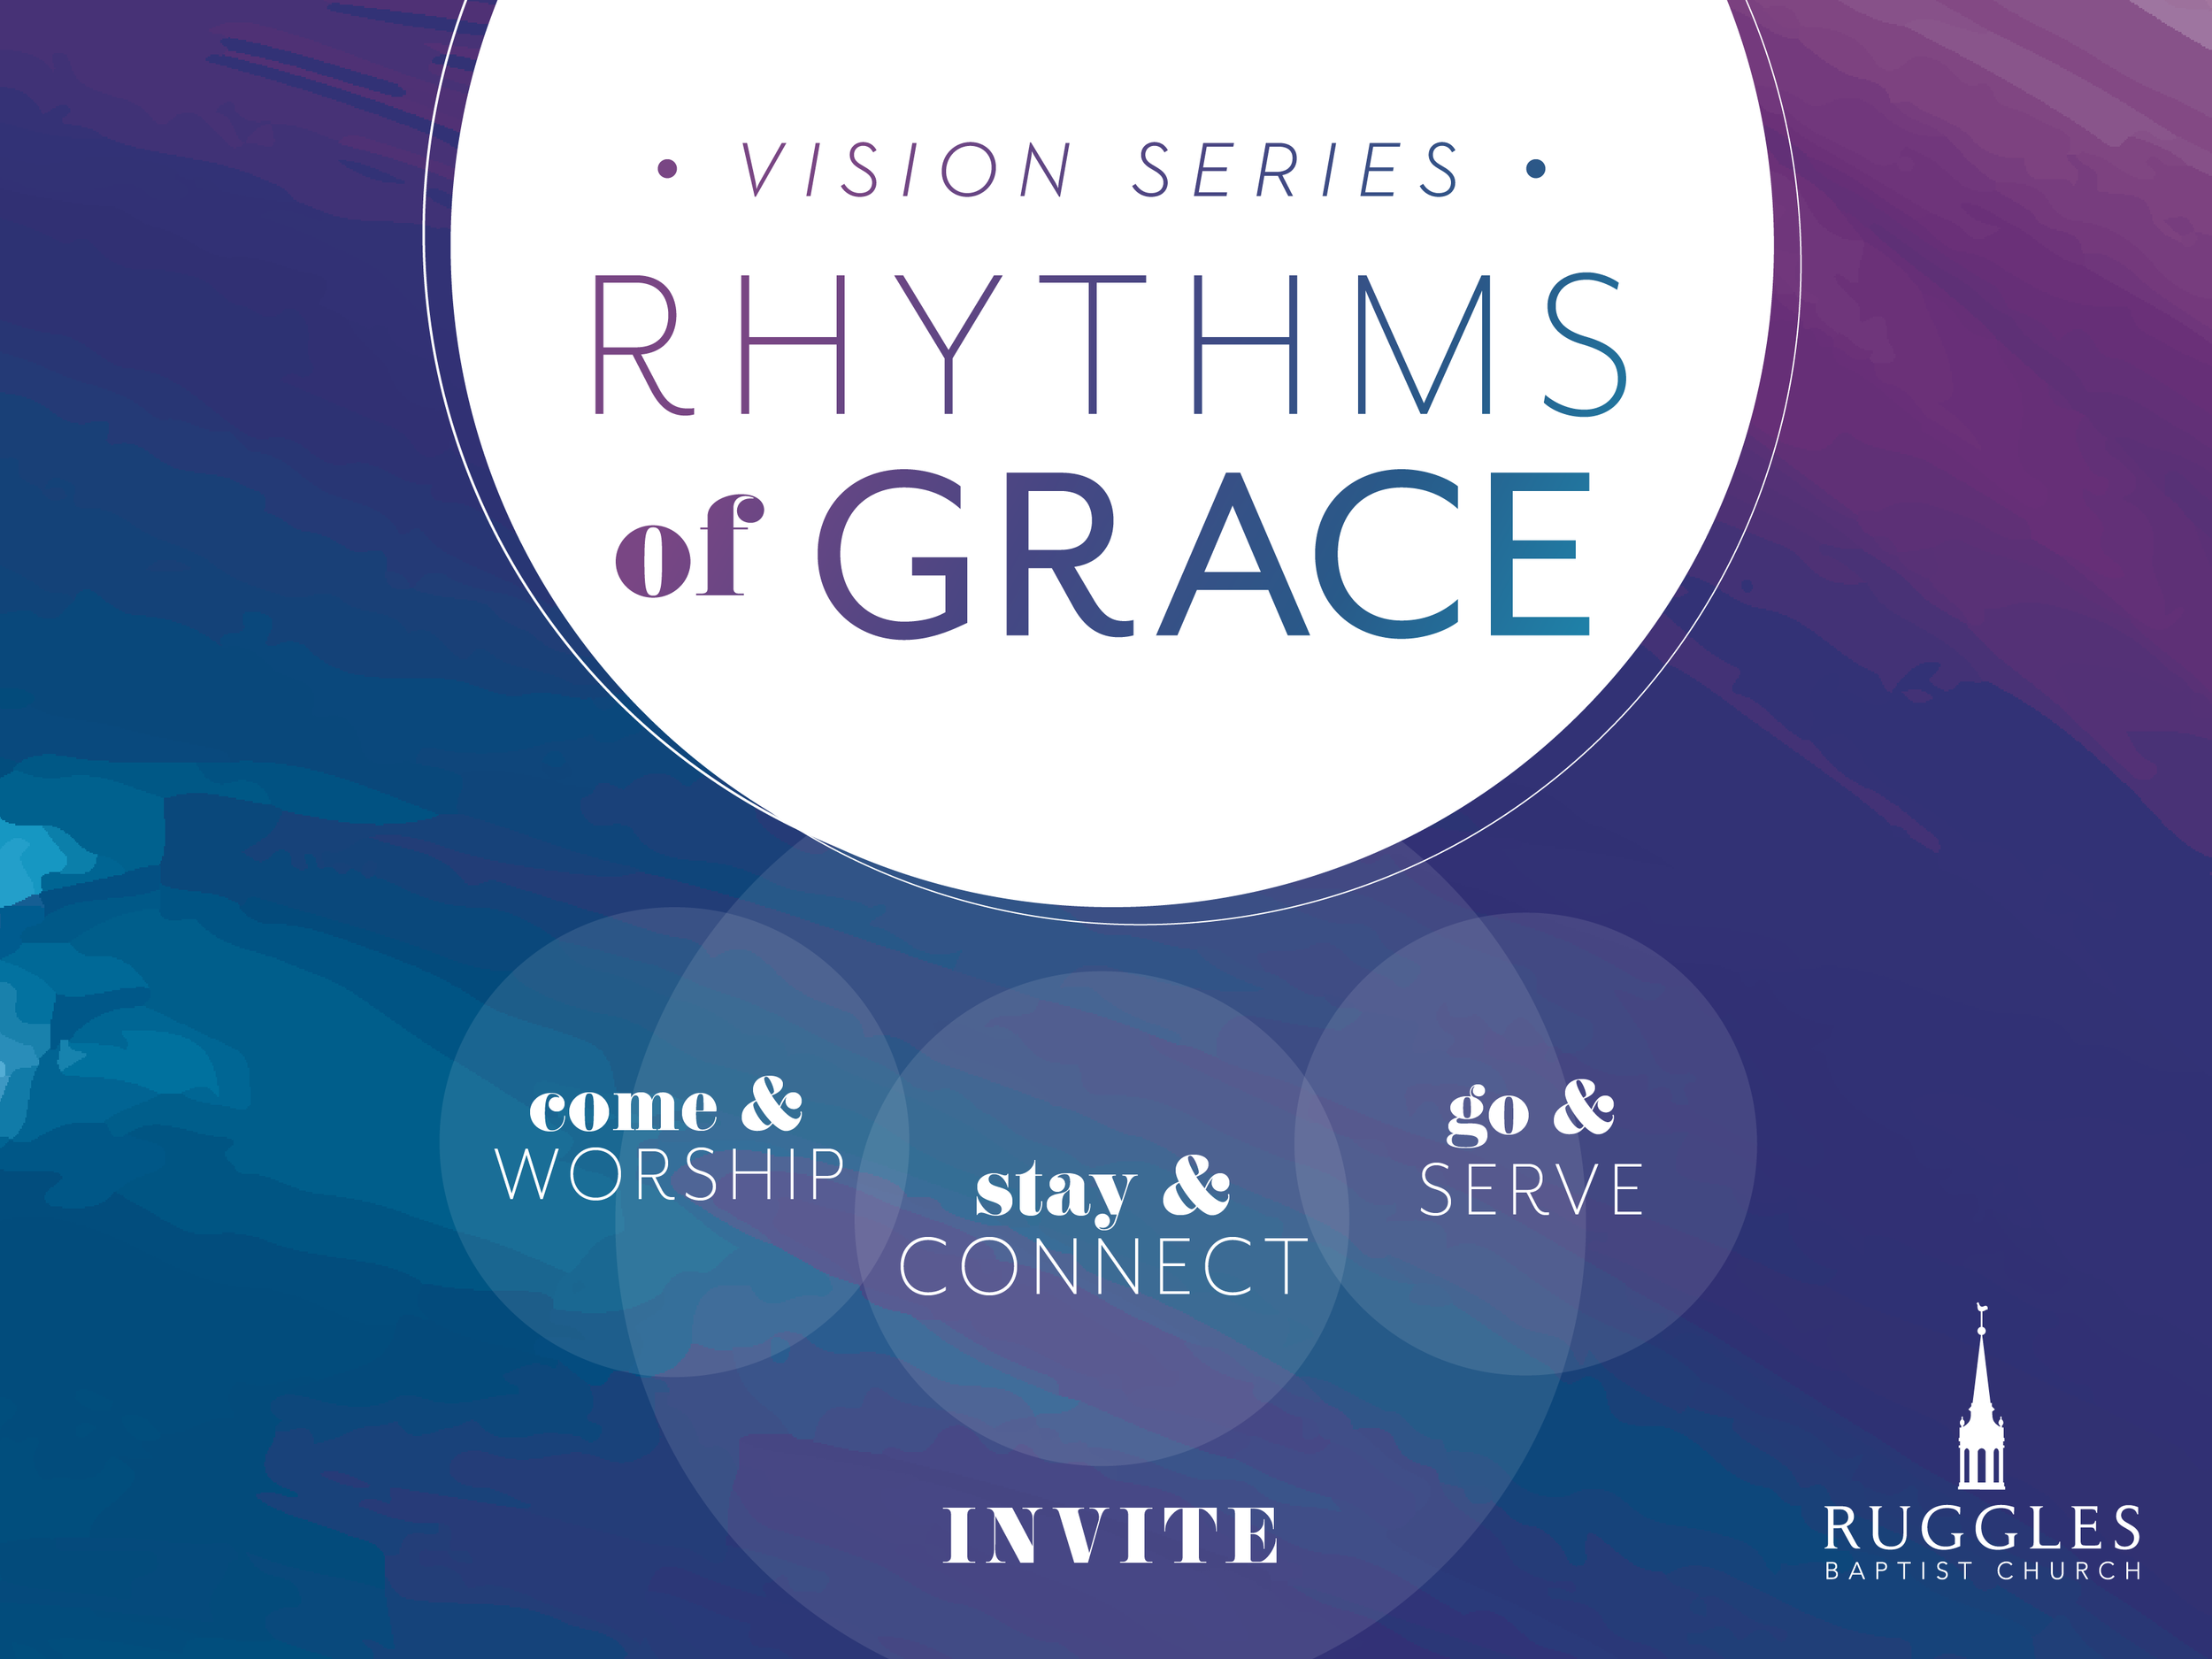 Rhythms of Grace_Title 16-9 2-3.png